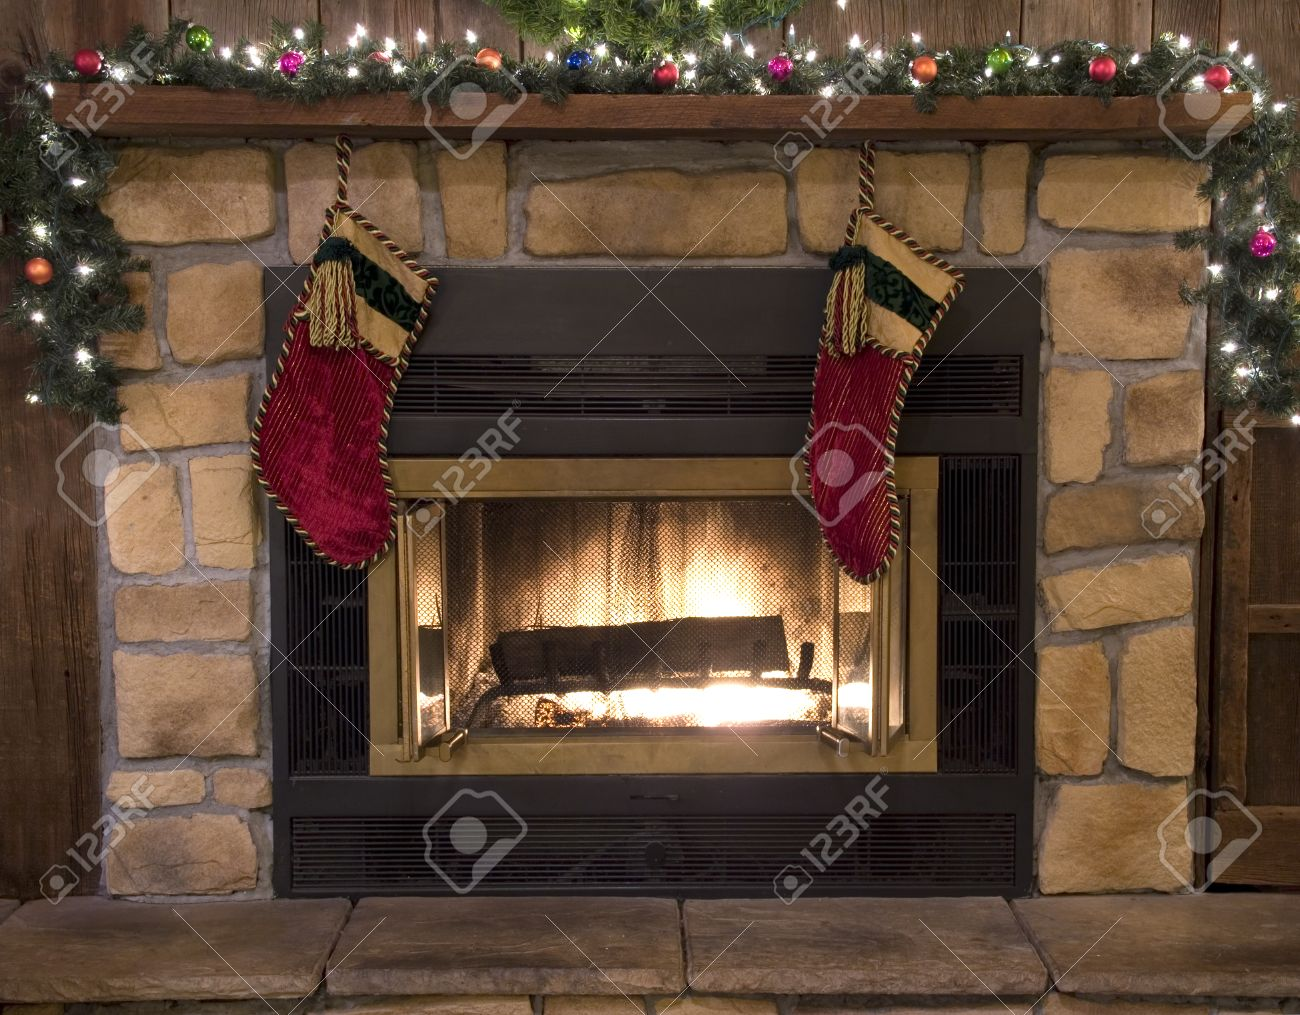 Christmas Hearth.Christmas Stockings Hanging Over The Fireplace Hearth